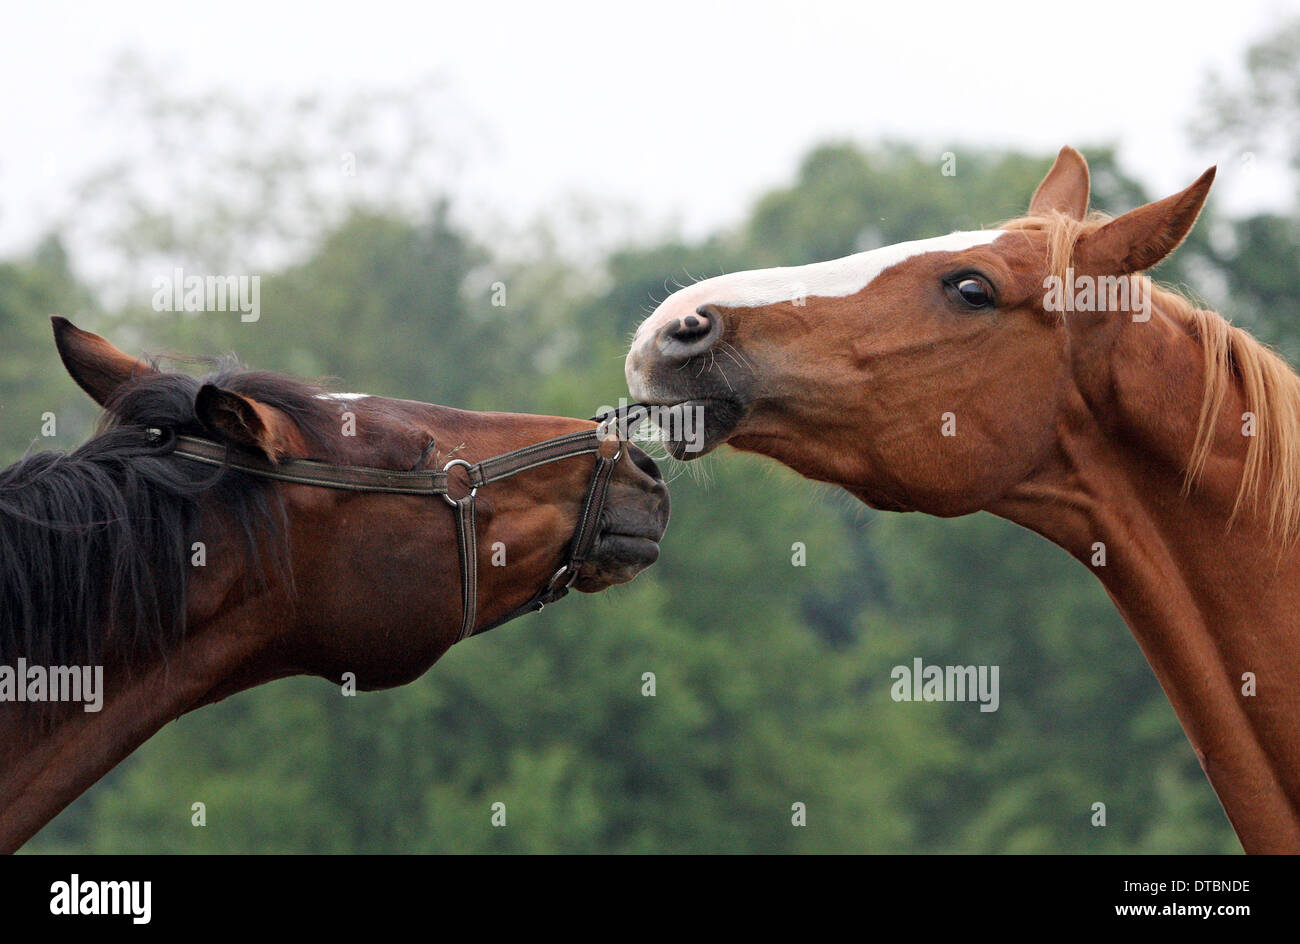 Horse pulls on the halter of a conspecific - Stock Image